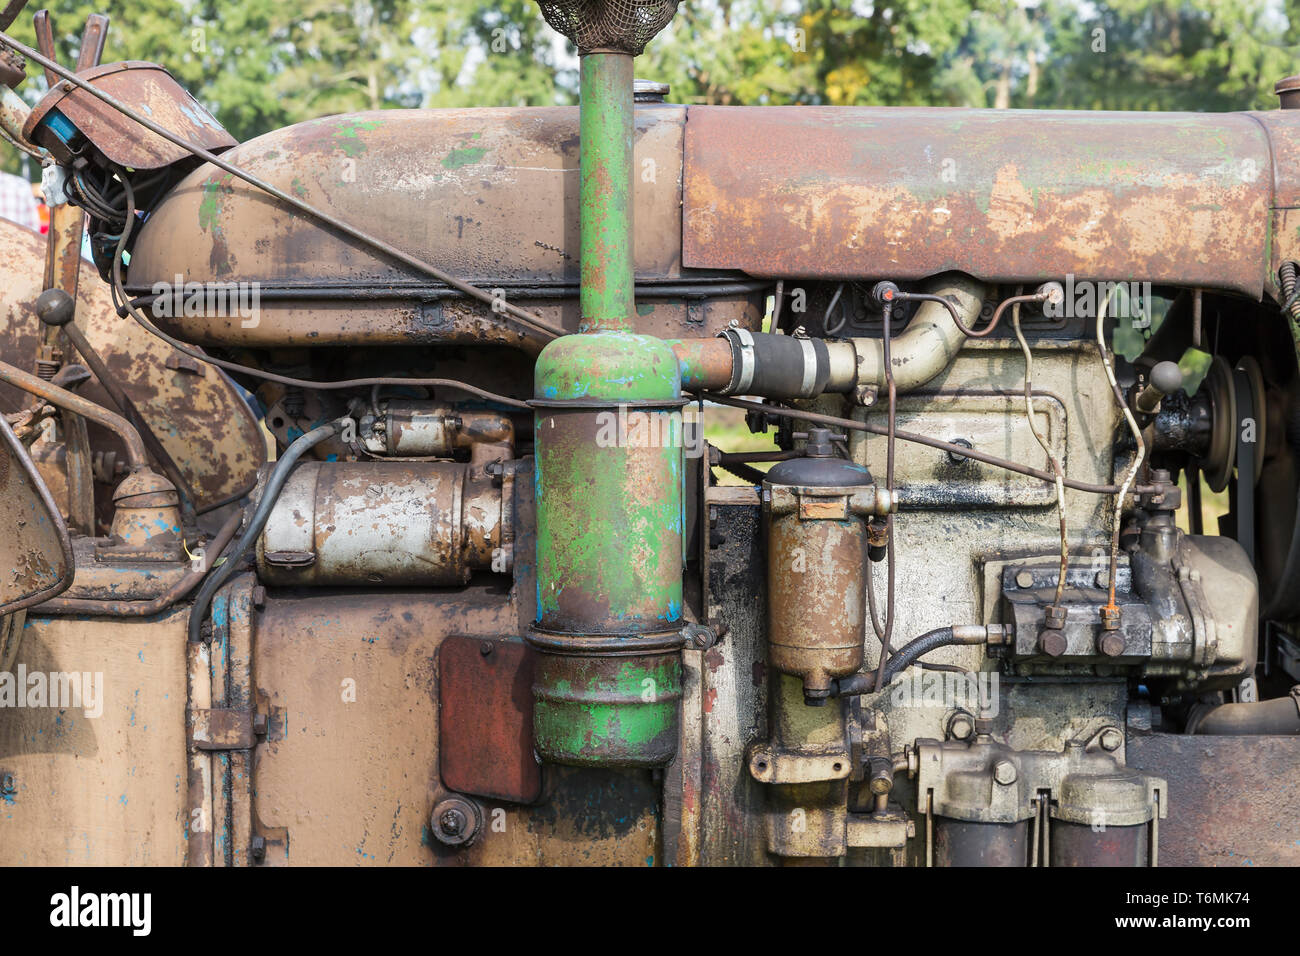 Old Tractor Engine Oil Stock Photos & Old Tractor Engine Oil